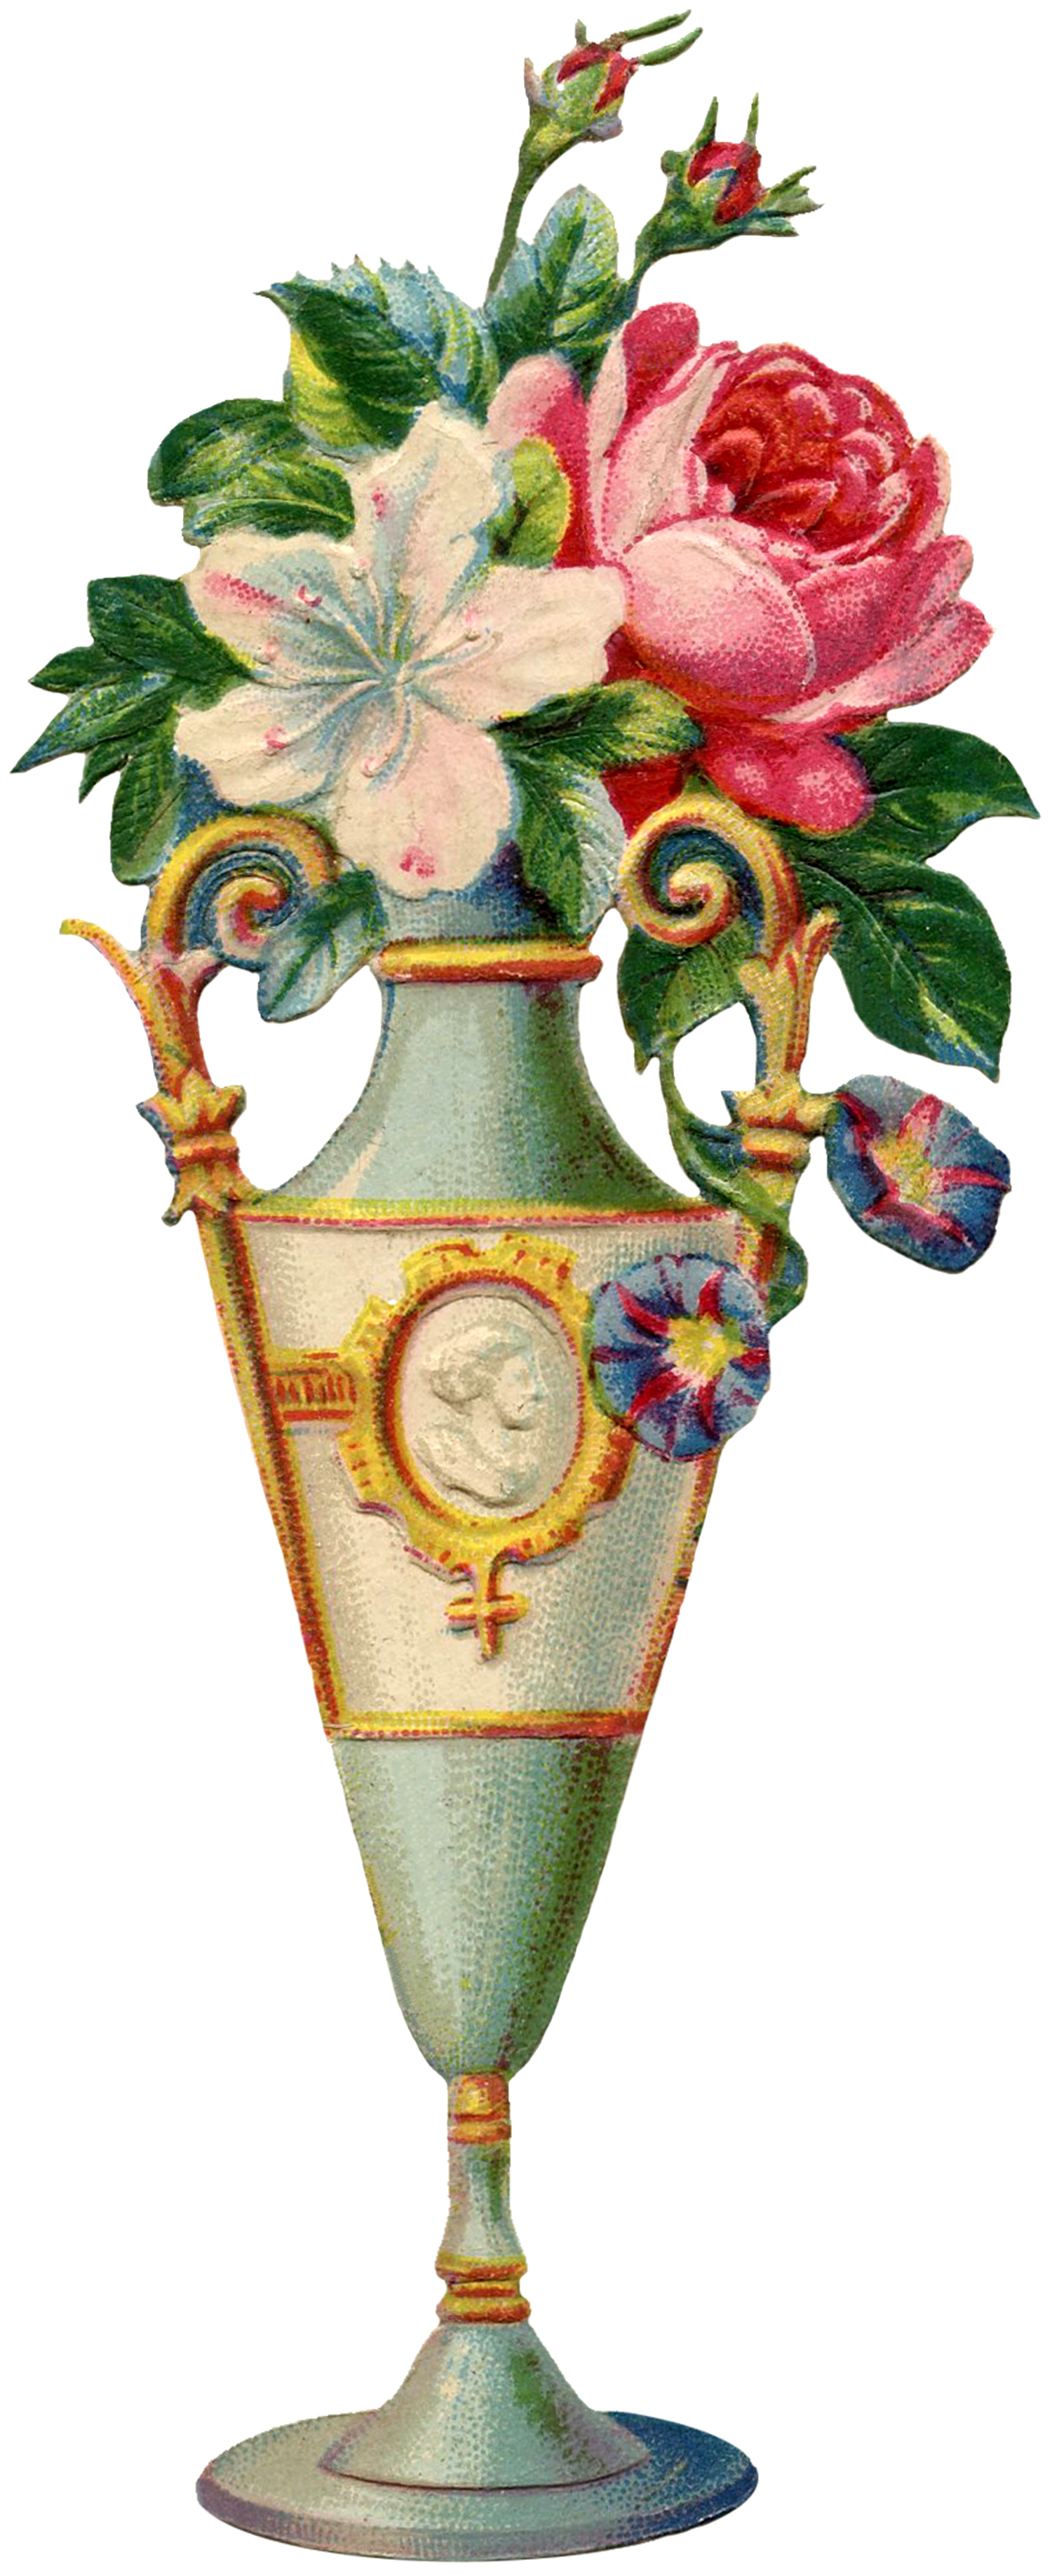 Floral Vase Image The Graphics Fairy